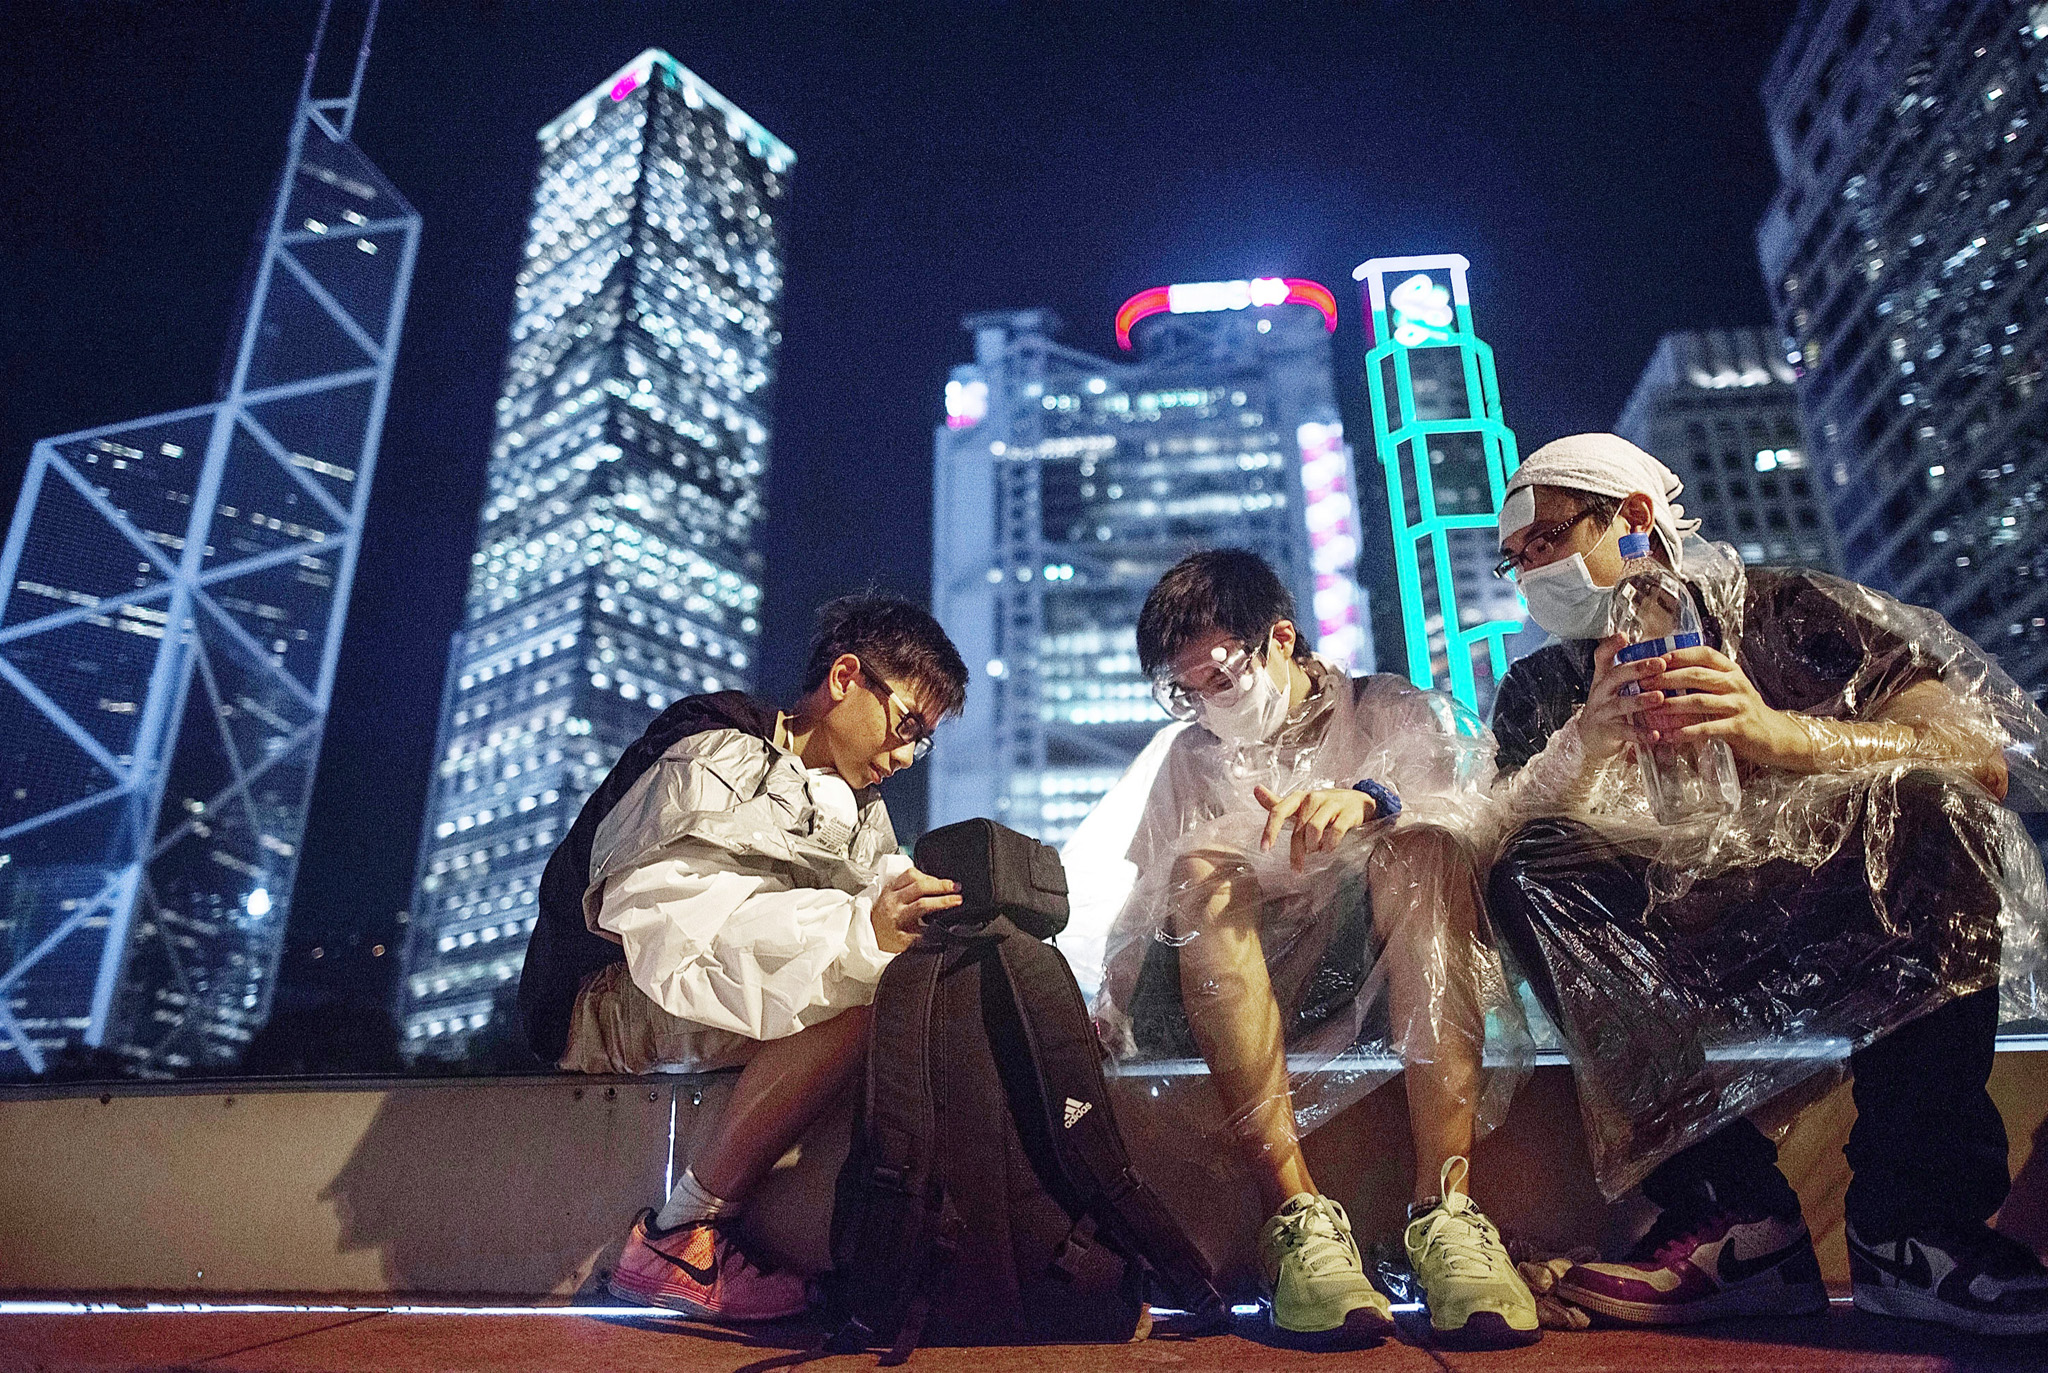 Pro Democracy Supporters Attempt To Bring Hong Kong To A Stand Still With Mass Rally...HONG KONG - SEPTEMBER 29:  Protesters sit on top of a parking ramp in the Central District on September 29, 2014 in Hong Kong. Thousands of pro democracy supporters have remained in the streets of Hong Kong for another day of protests. Protestors are unhappy with Chinese government's plans to vet candidates in Hong Kong's 2017 elections.  (Photo by Anthony Kwan/Getty Images)